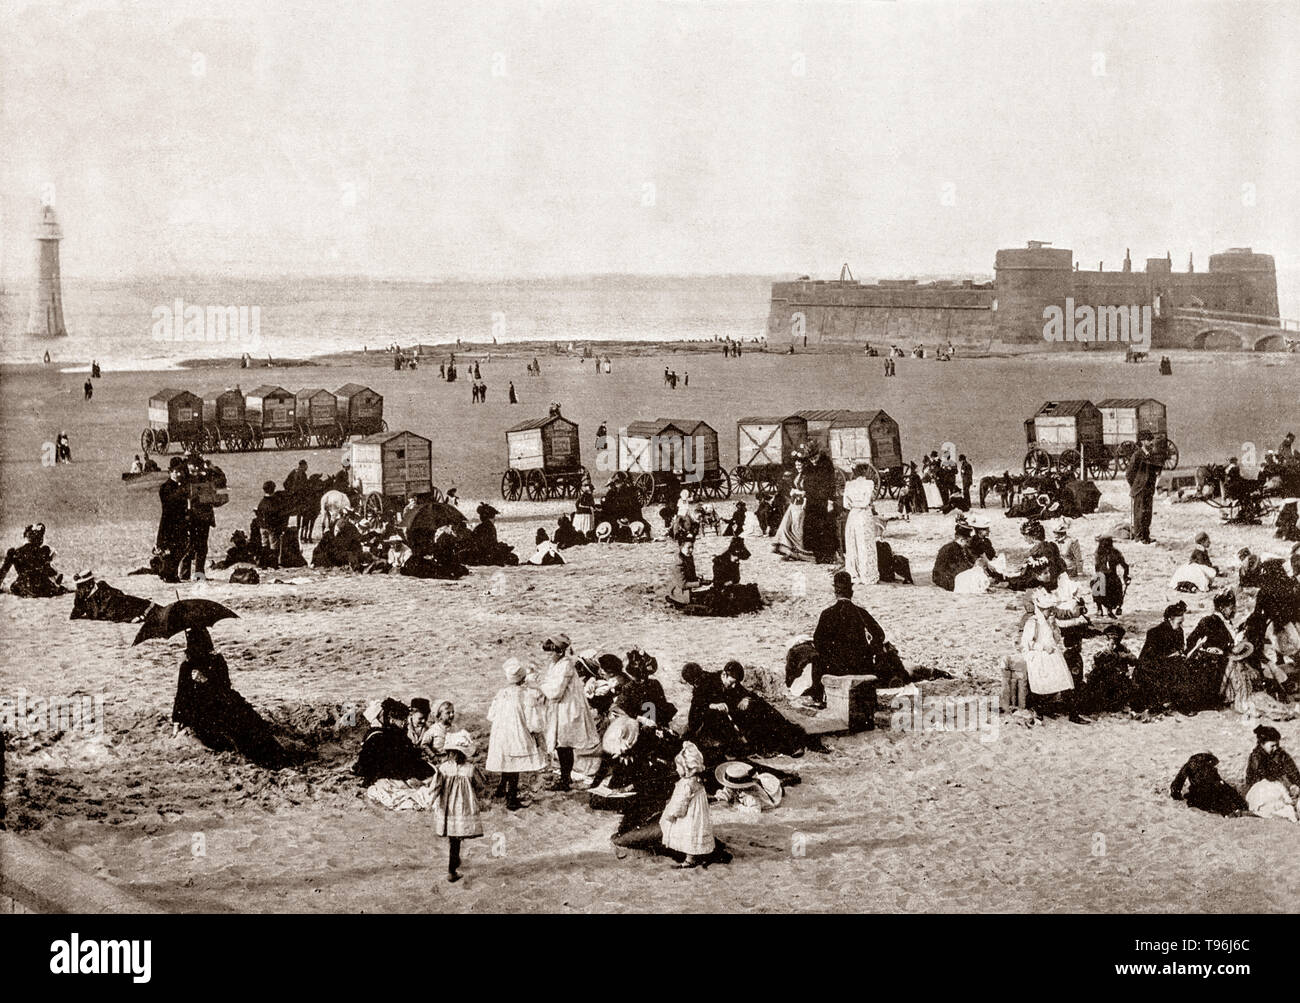 A late 19th Century view of  holiday makers beside bathing machines at New Brighton. A seaside resort on the Wirral peninsula in Merseyside, England, it has sandy beaches lining the Irish Sea on which stands Perch Rock battery completed in 1829. During the latter half of the 19th century, New Brighton developed as a very popular seaside resort serving Liverpool and the Lancashire industrial towns, and many of the large houses were converted to inexpensive hotels. - Stock Image